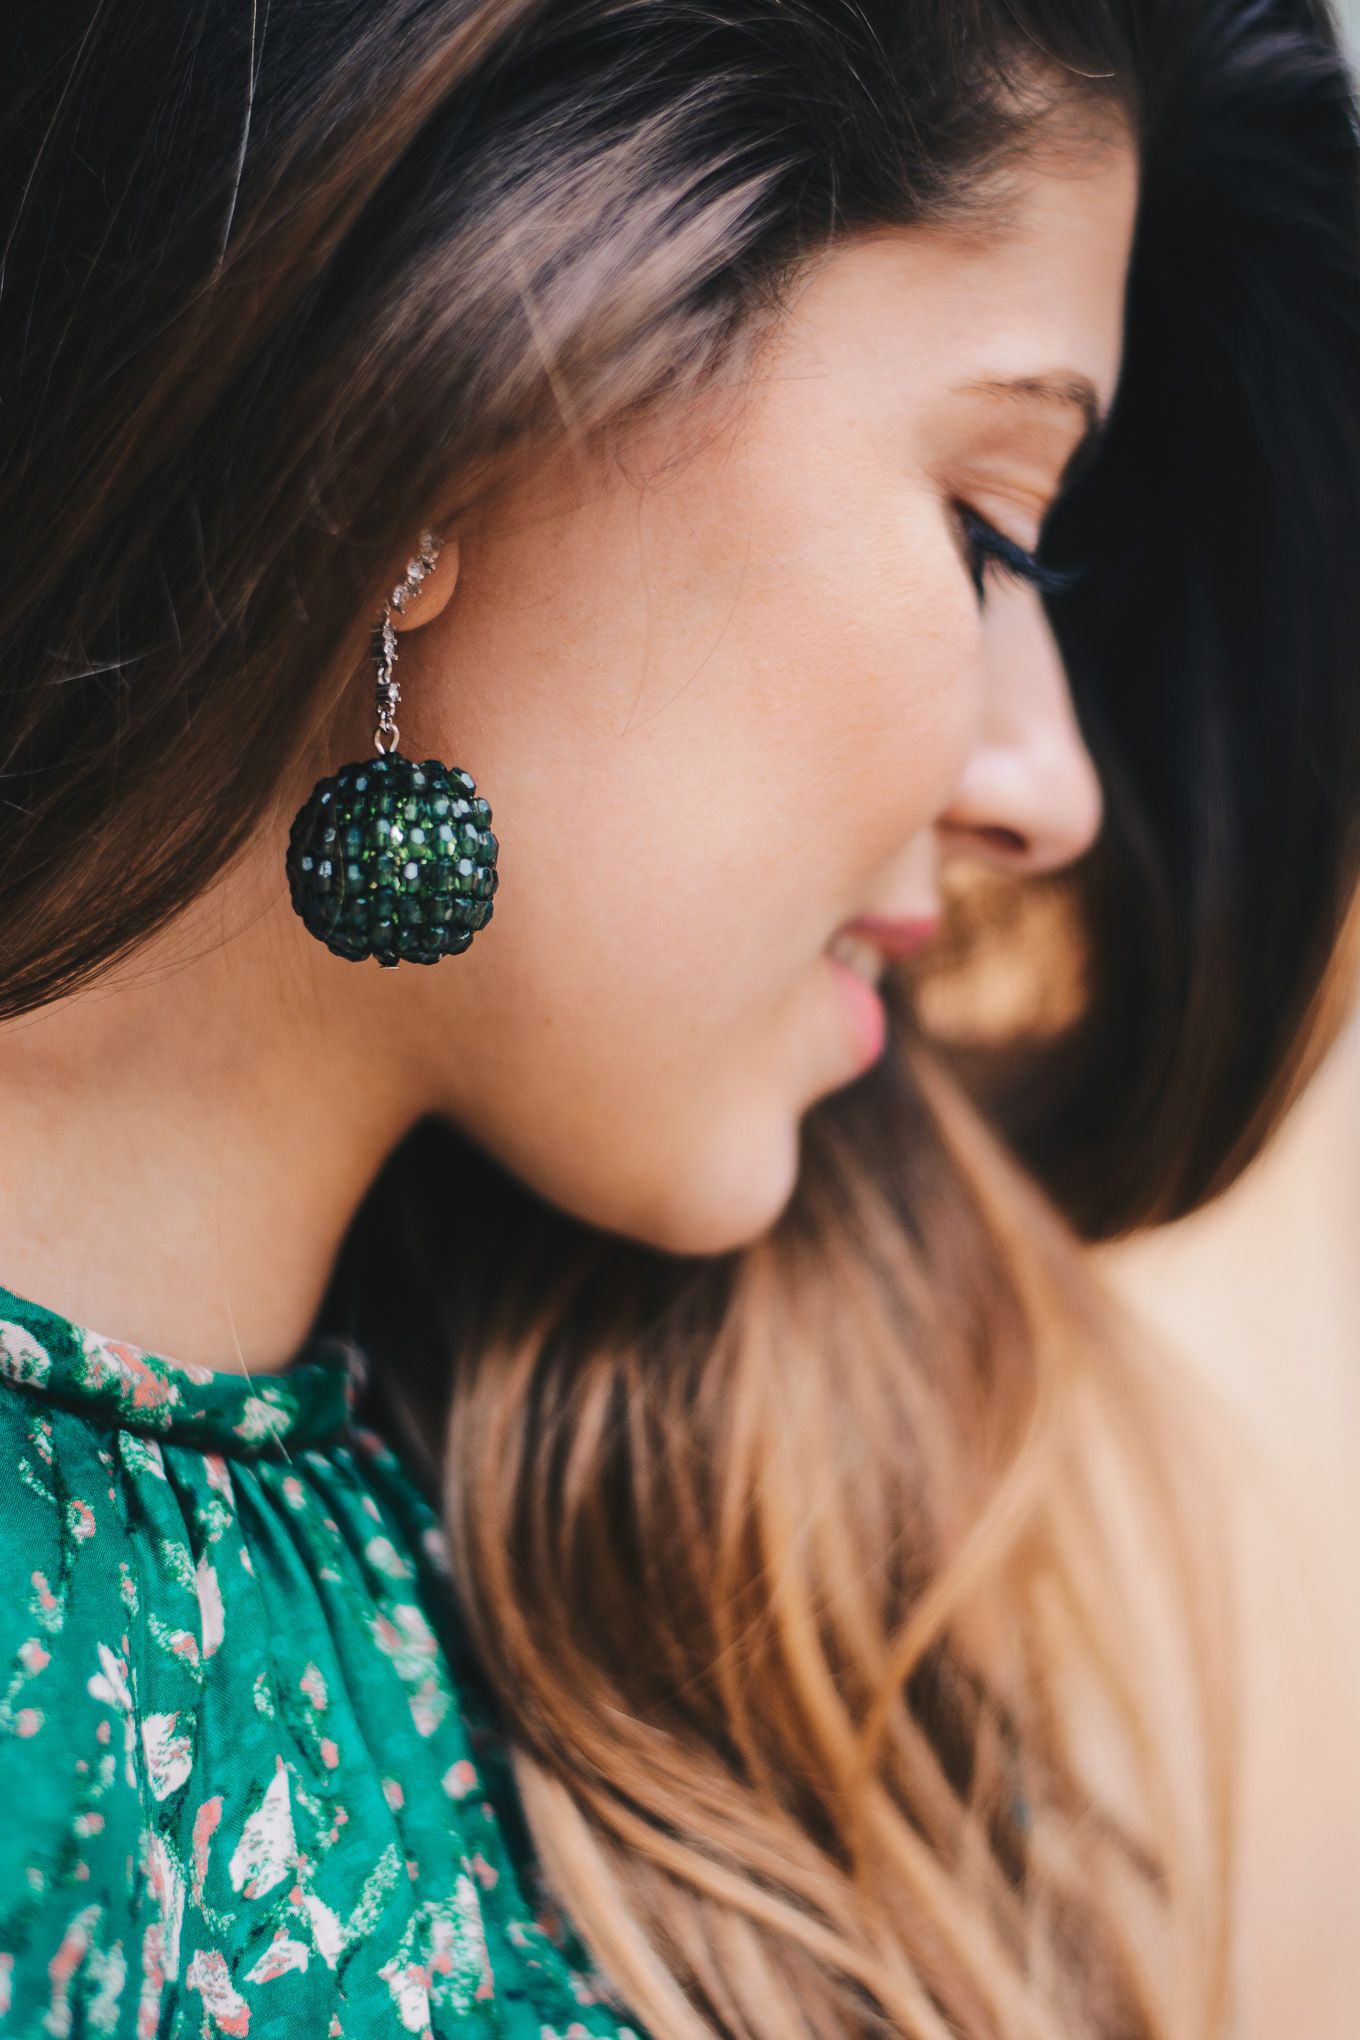 H&M Conscious Exclusive green pendant earings